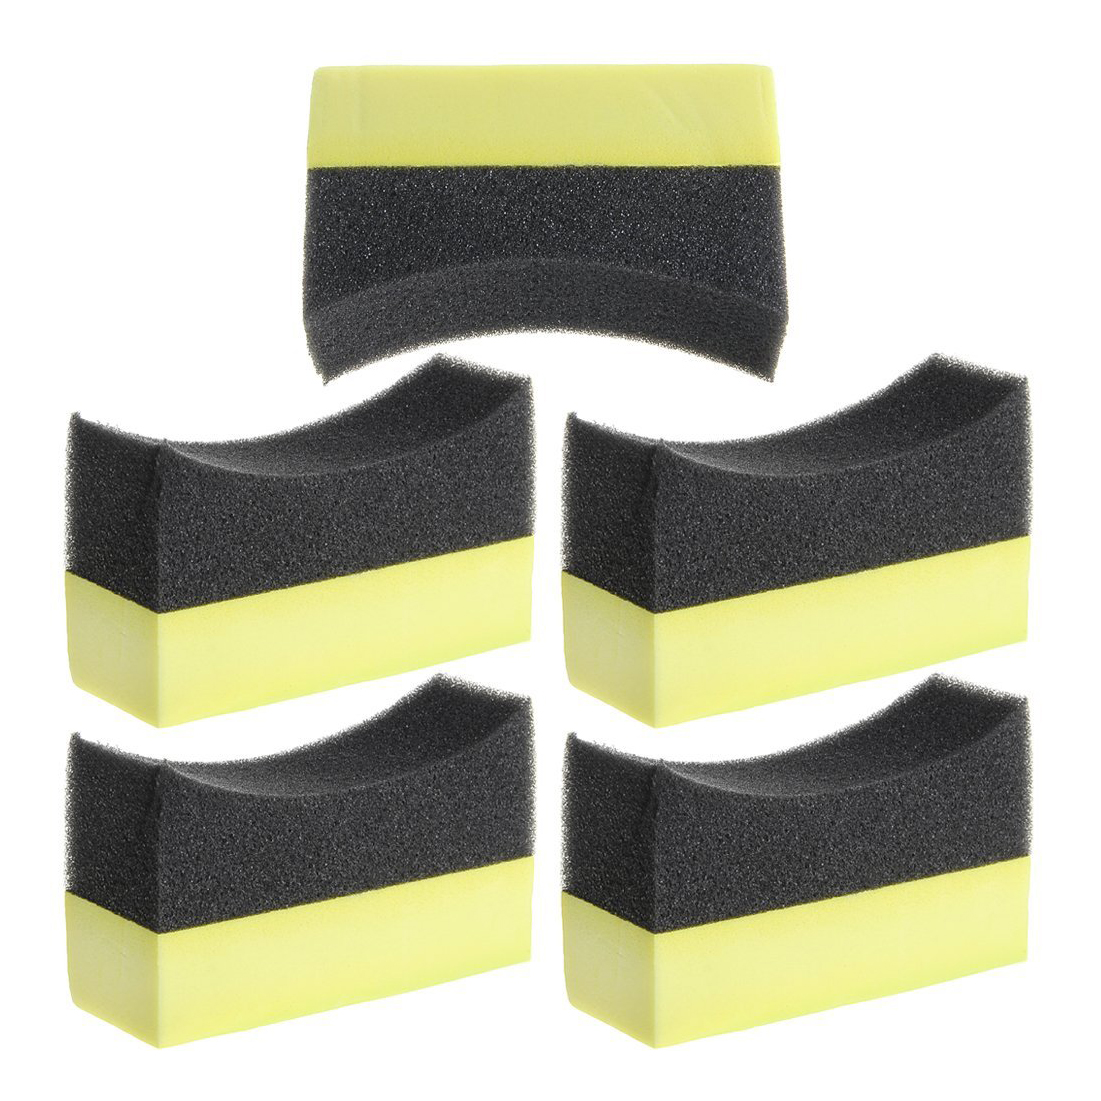 5x Professional Automotive Car Wheel Washer Tyre Tire Dressing Applicator Curved Foam Sponge Pad Black+yellow pvc car spare 15 tire tyre cover black yellow white